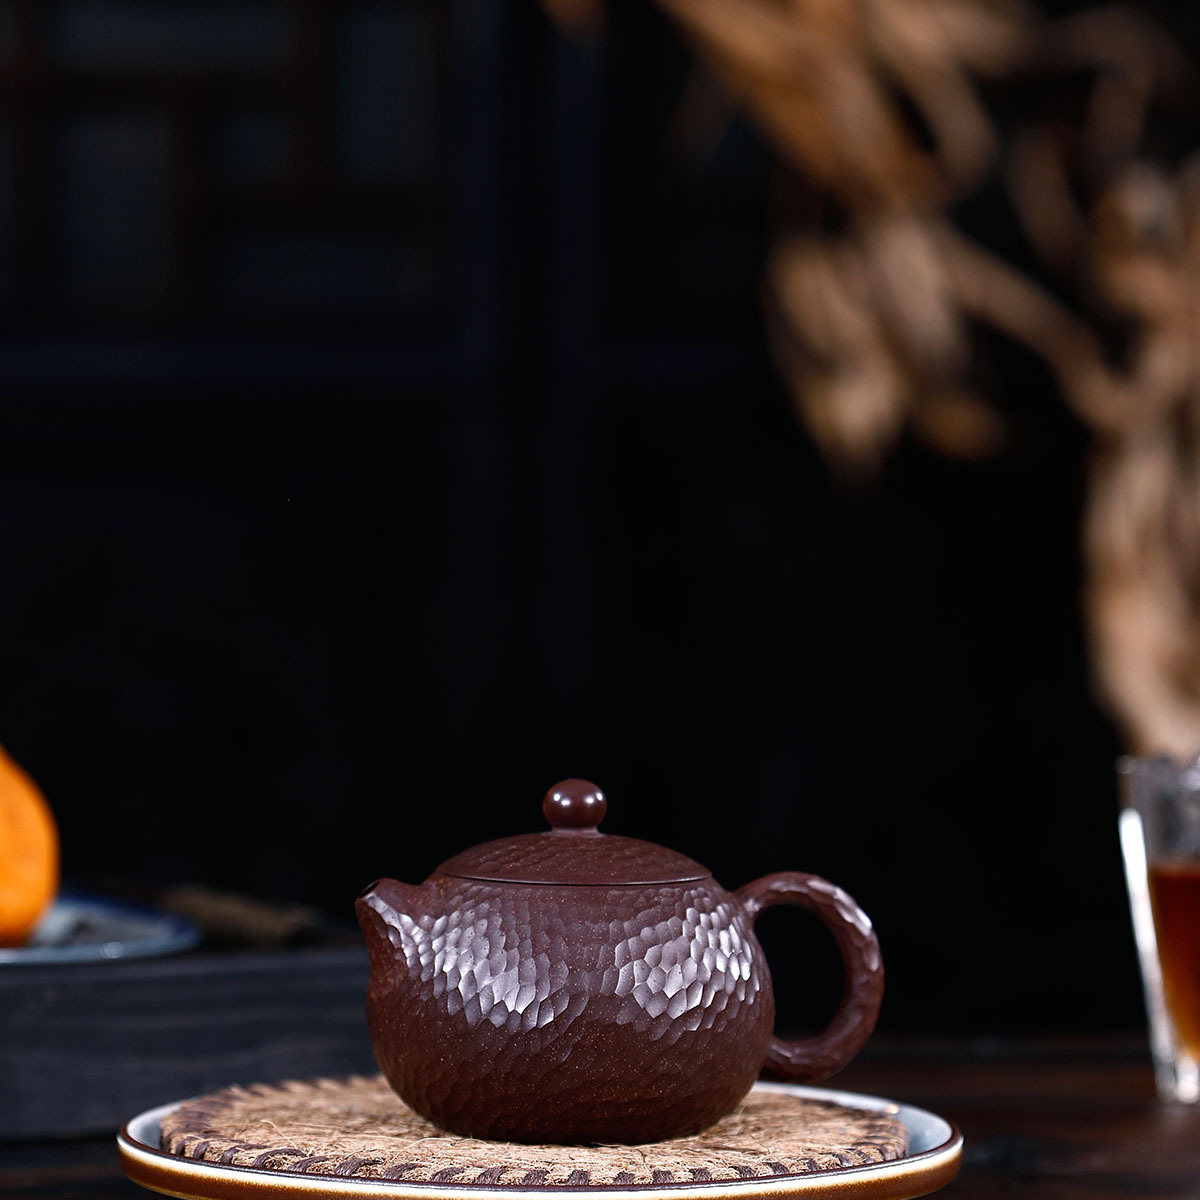 Manual Raw Ore Hammer Pattern Of Purple And Red Mud Xi Shi Kettle Kungfu Online Teapot Tea Set Household Infusion Of Tea SuitManual Raw Ore Hammer Pattern Of Purple And Red Mud Xi Shi Kettle Kungfu Online Teapot Tea Set Household Infusion Of Tea Suit